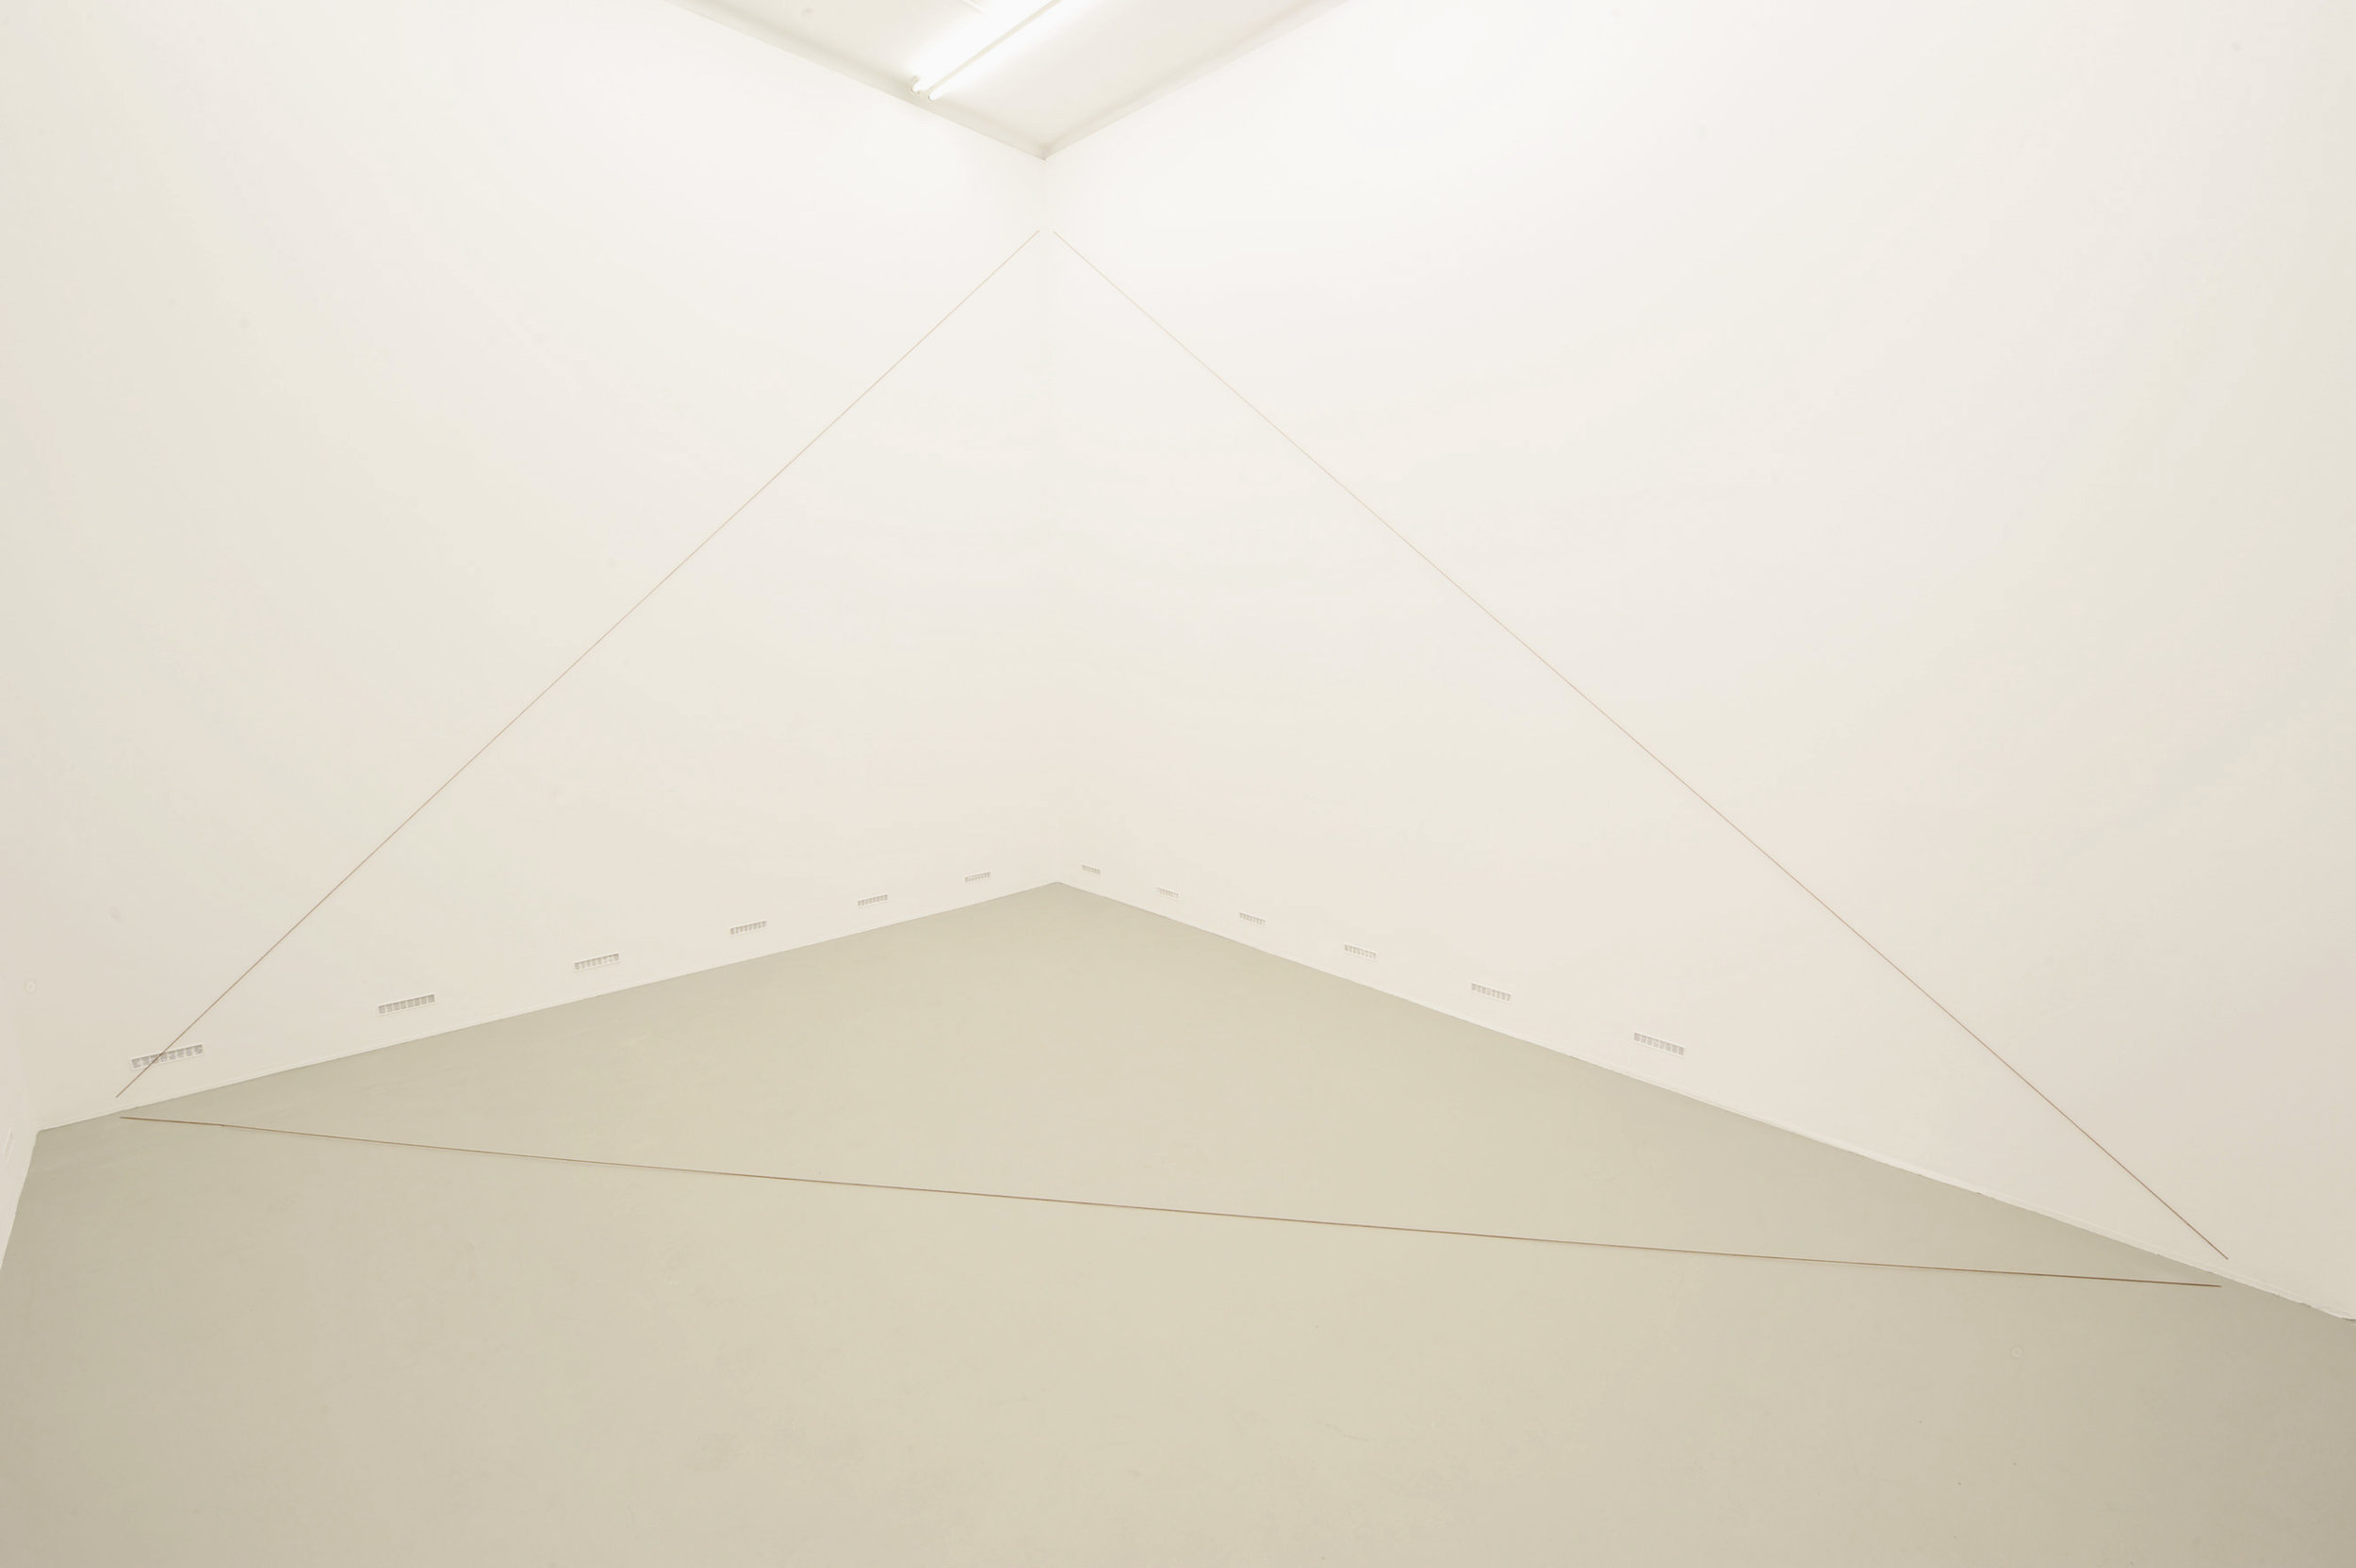 Exhibition View, Galerie Hubert Winter, curated by_Yve-Alain Bois, 2013, Photo: Galerie Hubert Winter